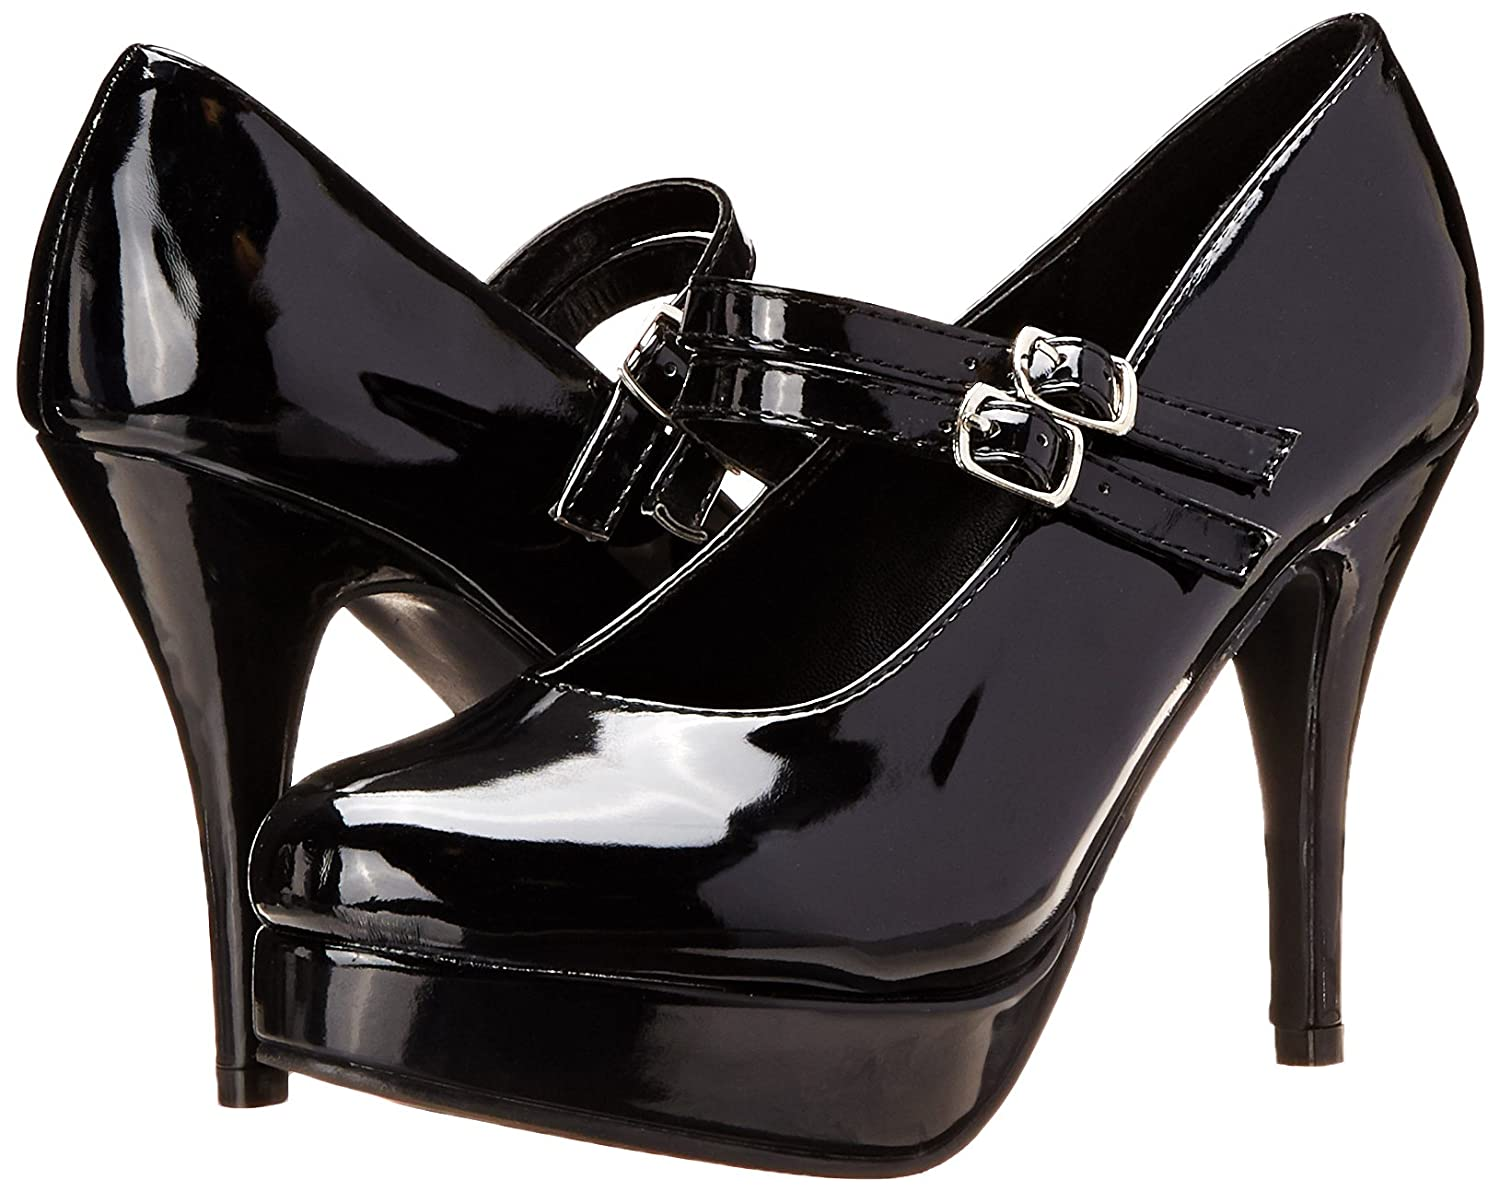 Ellie Shoes Women's 421 Jane Maryjane Pump B00DGQKMTO 10 B(M) US|Black